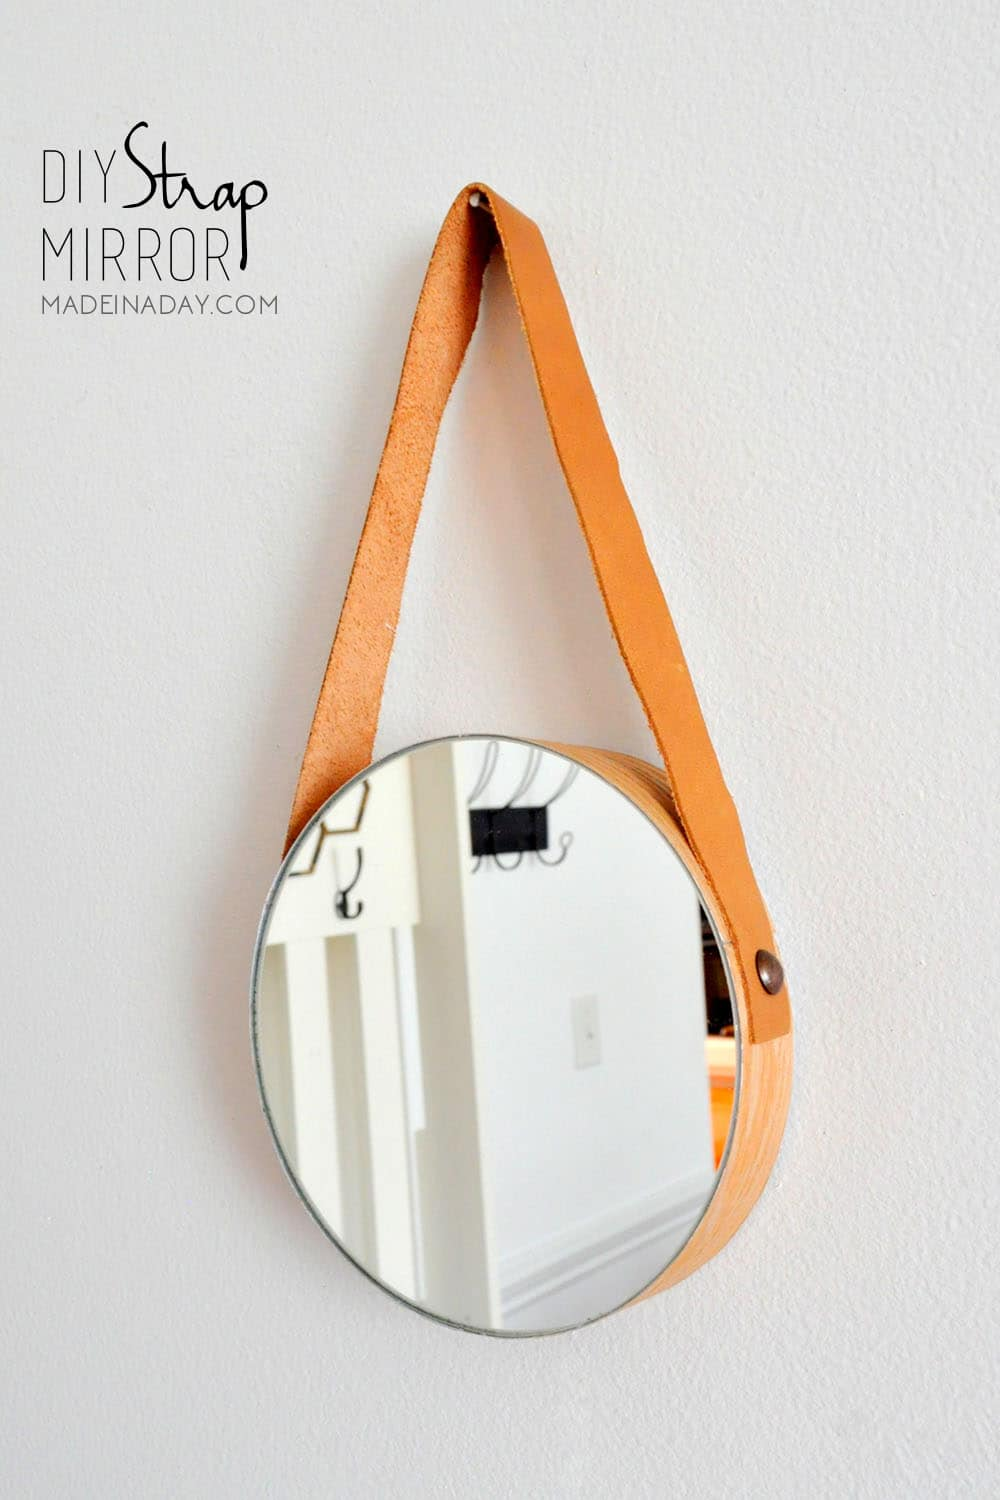 DIY Wood Leather Strap Mirror